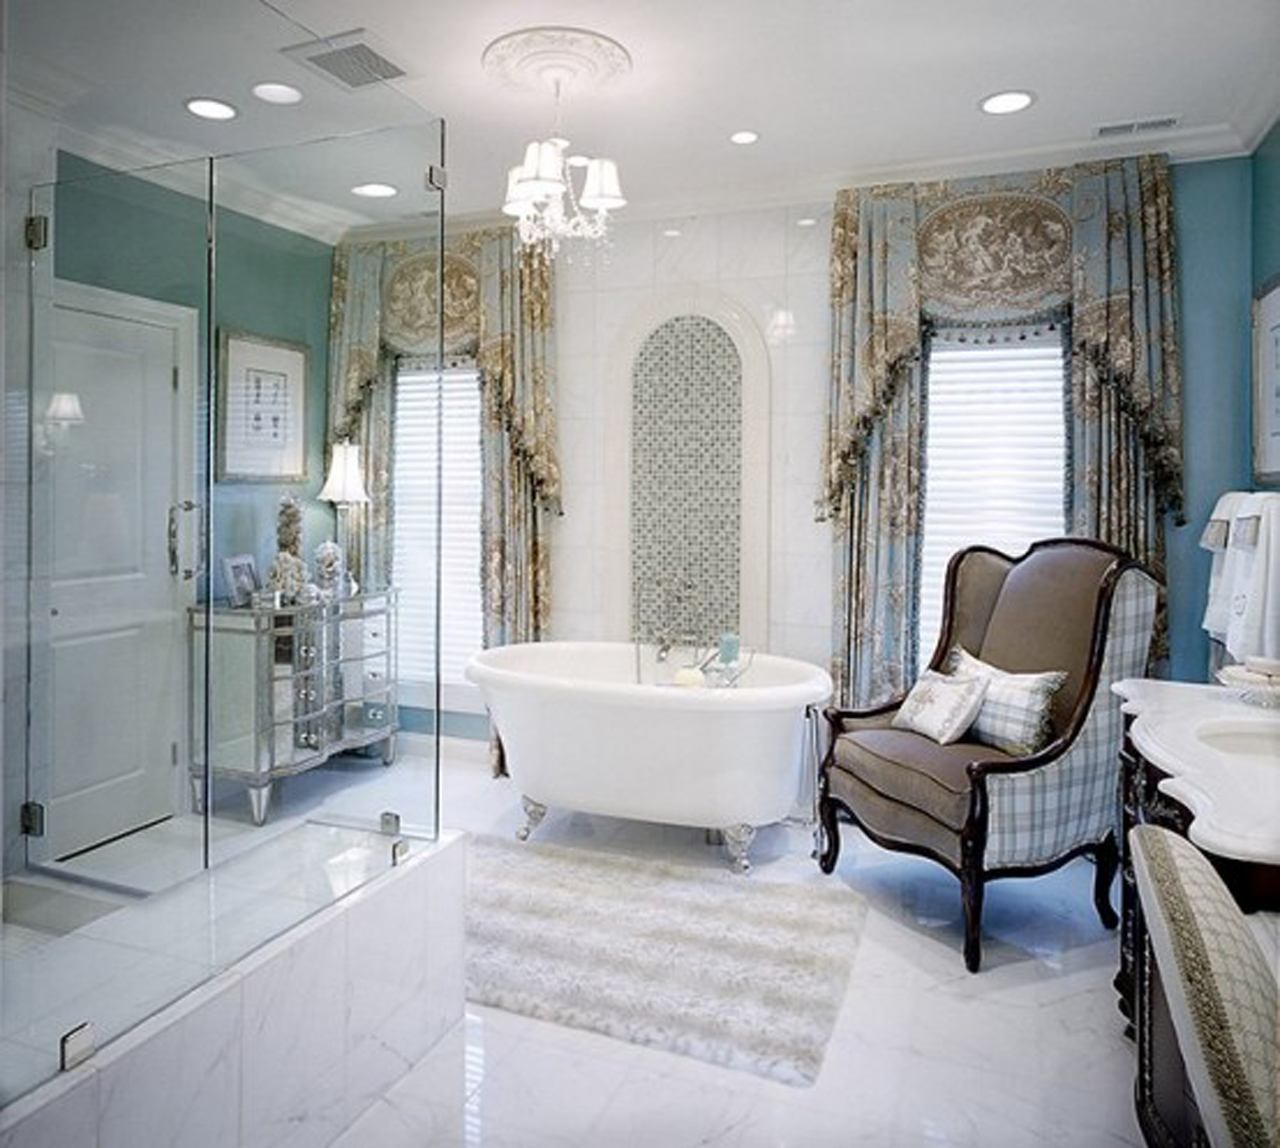 Why the Guest Room Needs a Private Bathroom?